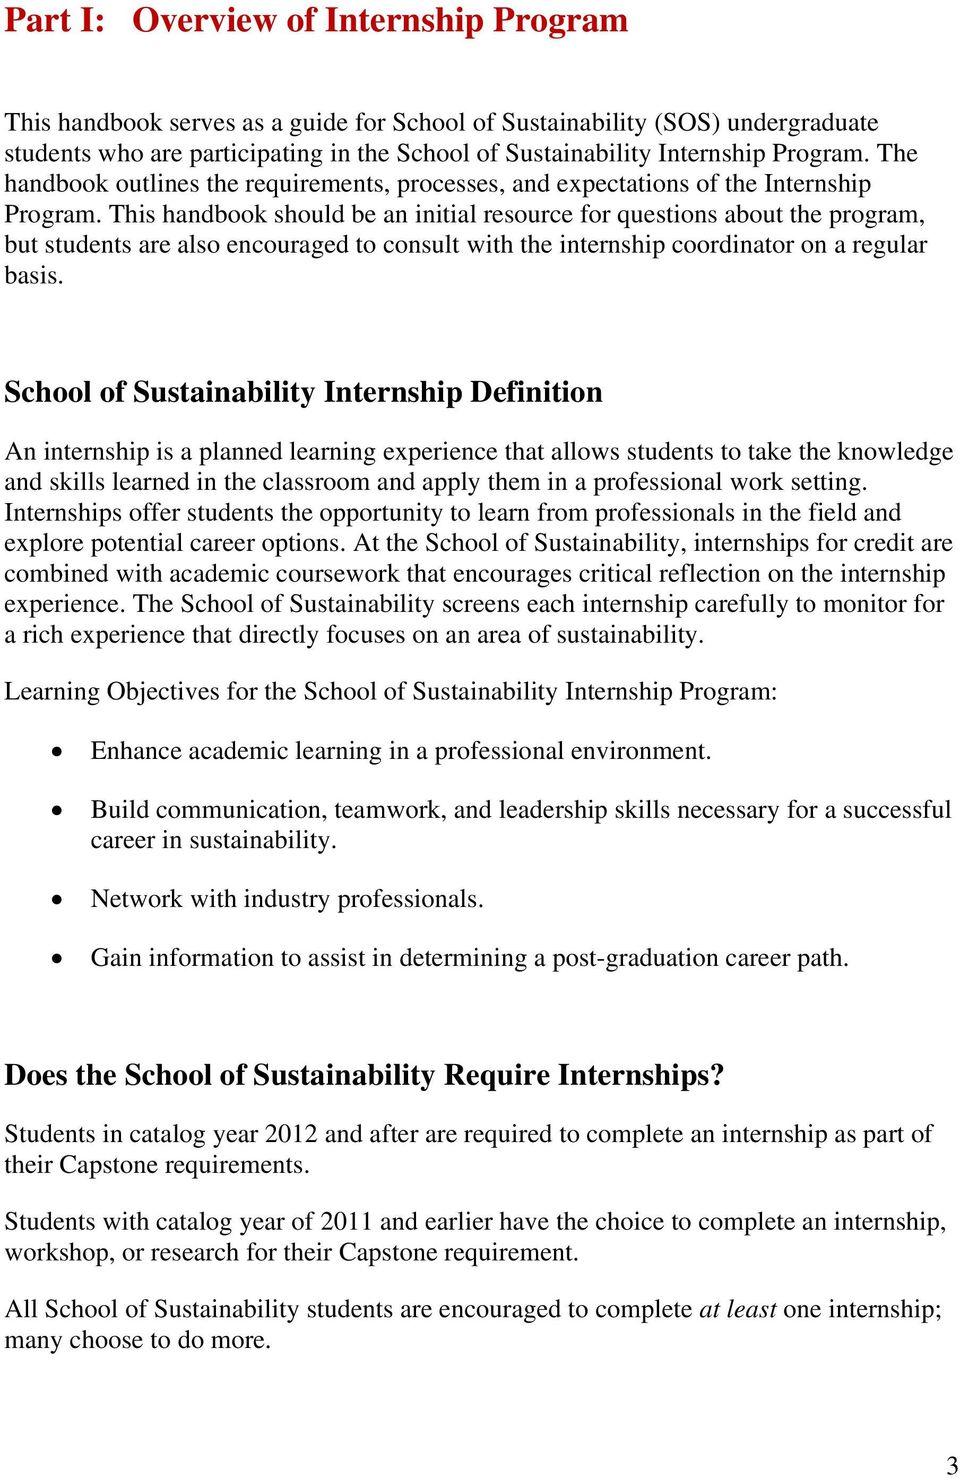 Part I: Overview and Definitions of the Internship Program  Step by